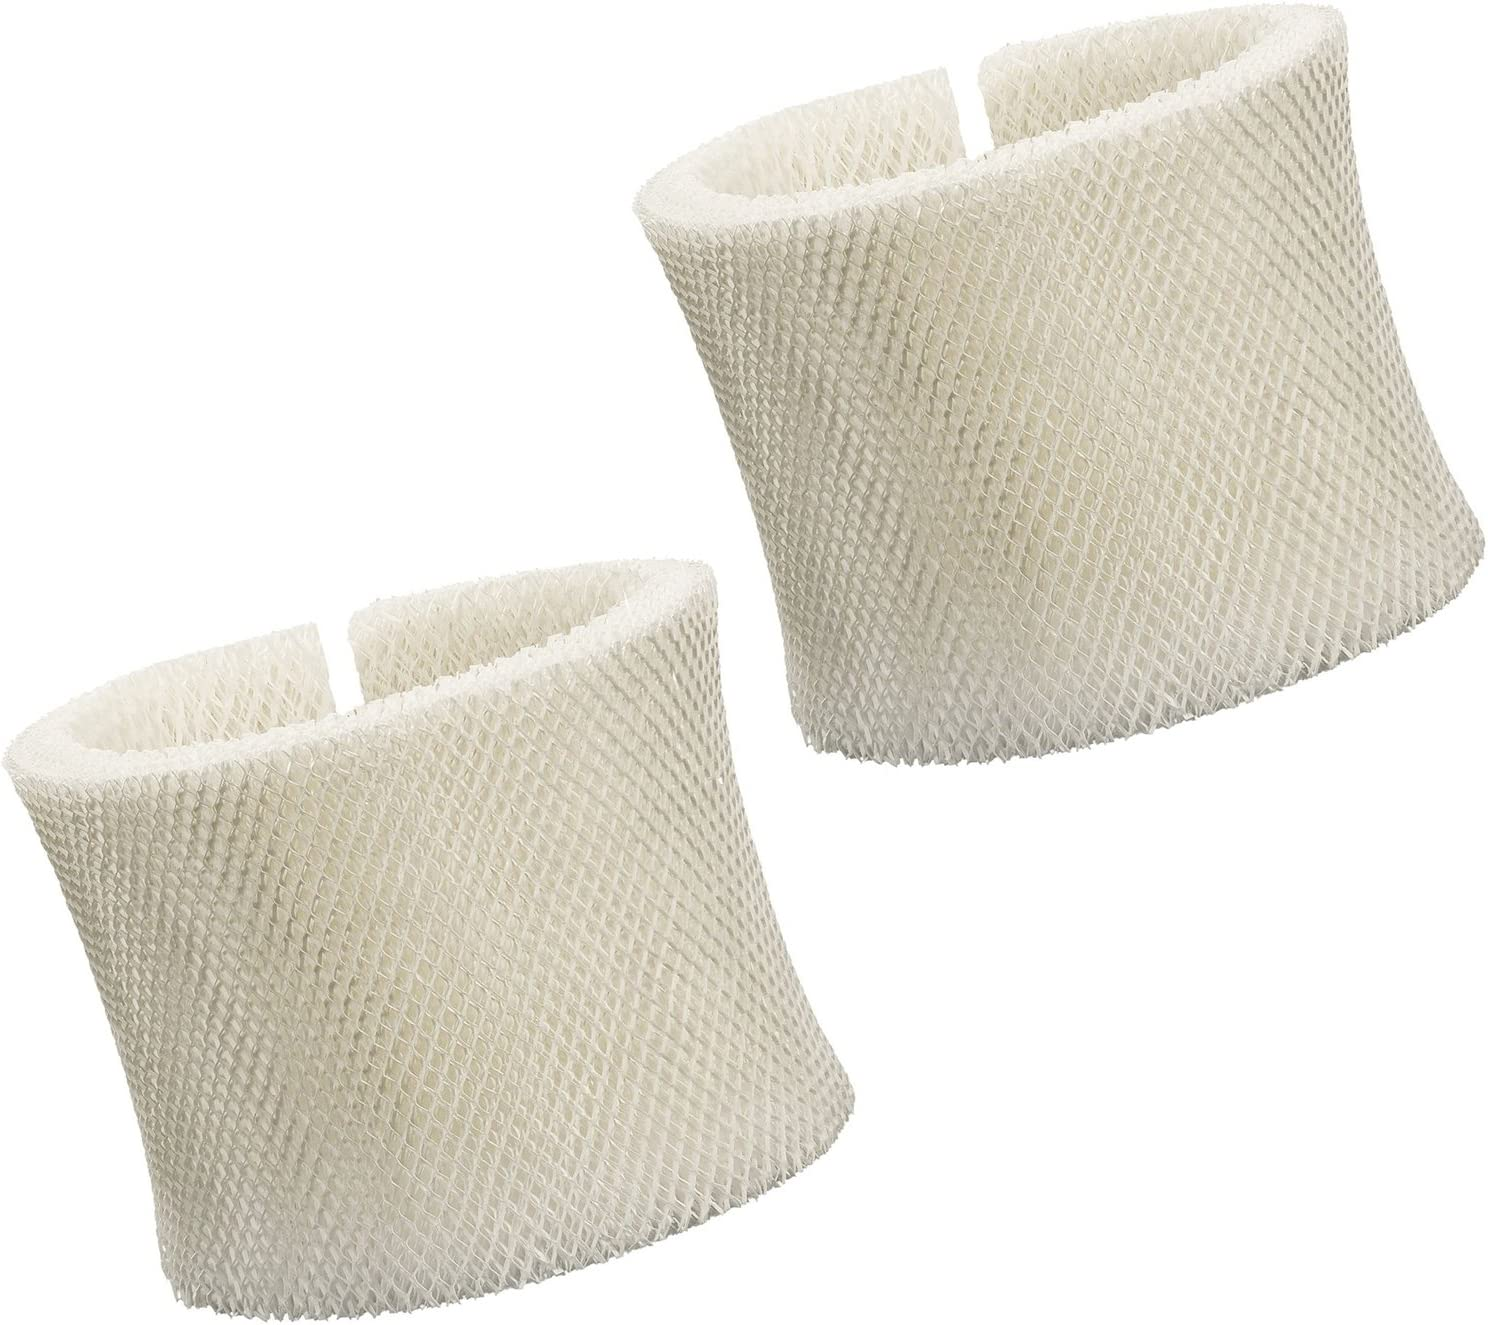 ANTOBLE 2 Pack Reservation Superlatite MAF2 Wicking A for Filter Humidifier Replacements